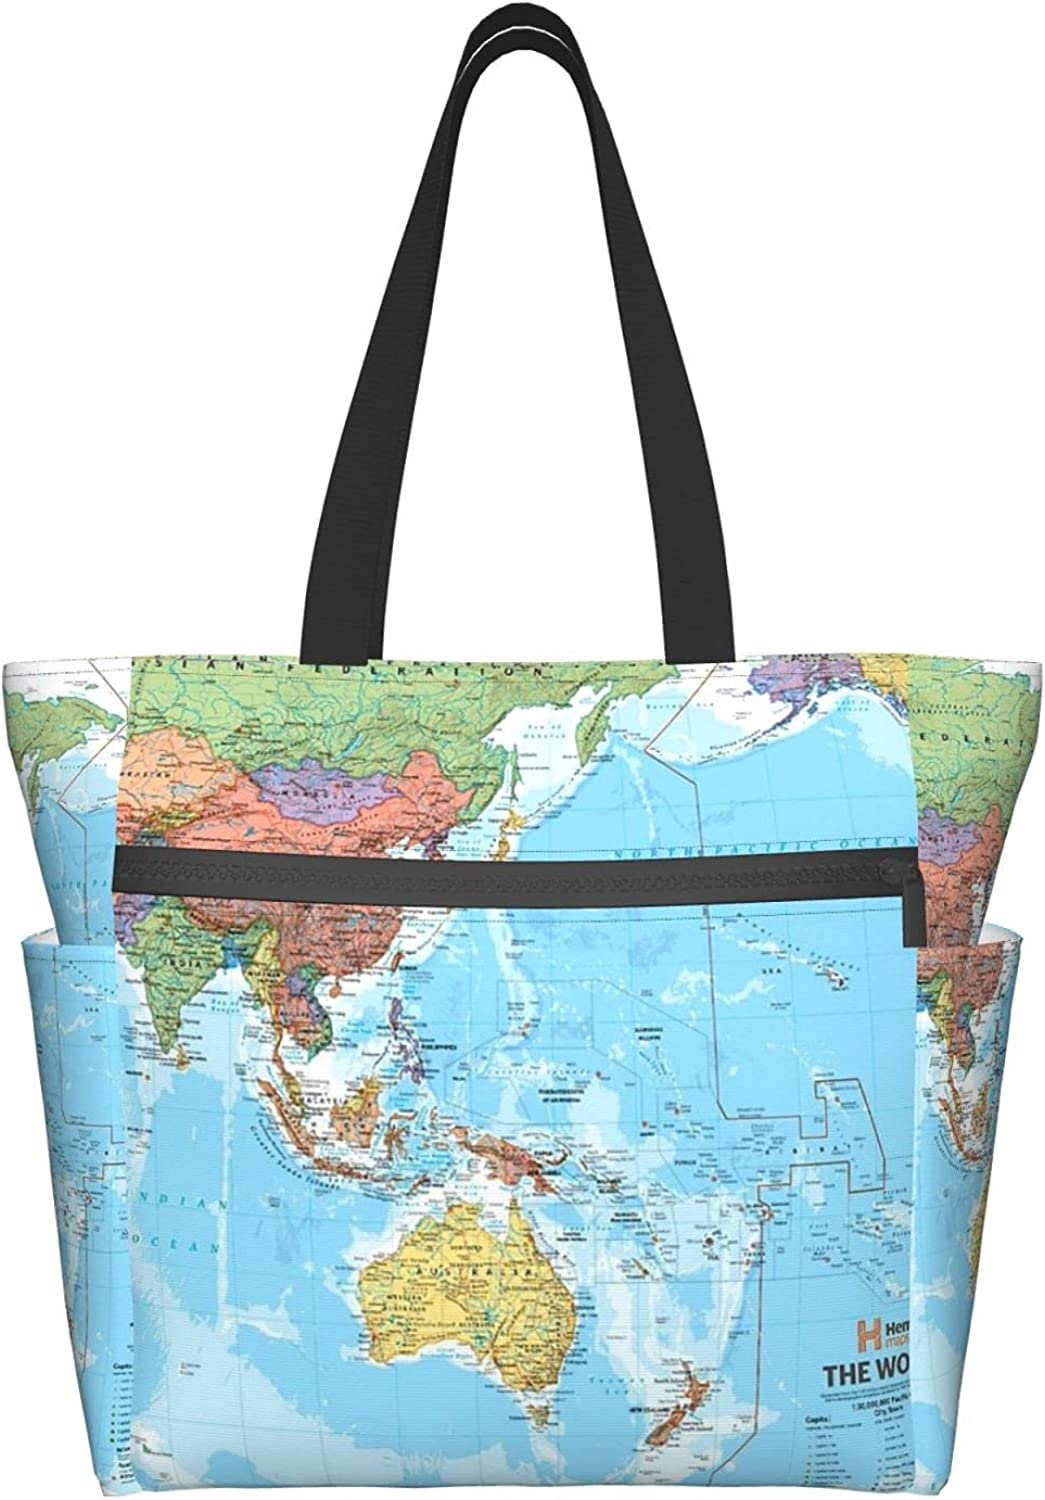 Tote Travel Bag For Women World Many Topics on TV Recommended With Pock Shoulder Maps